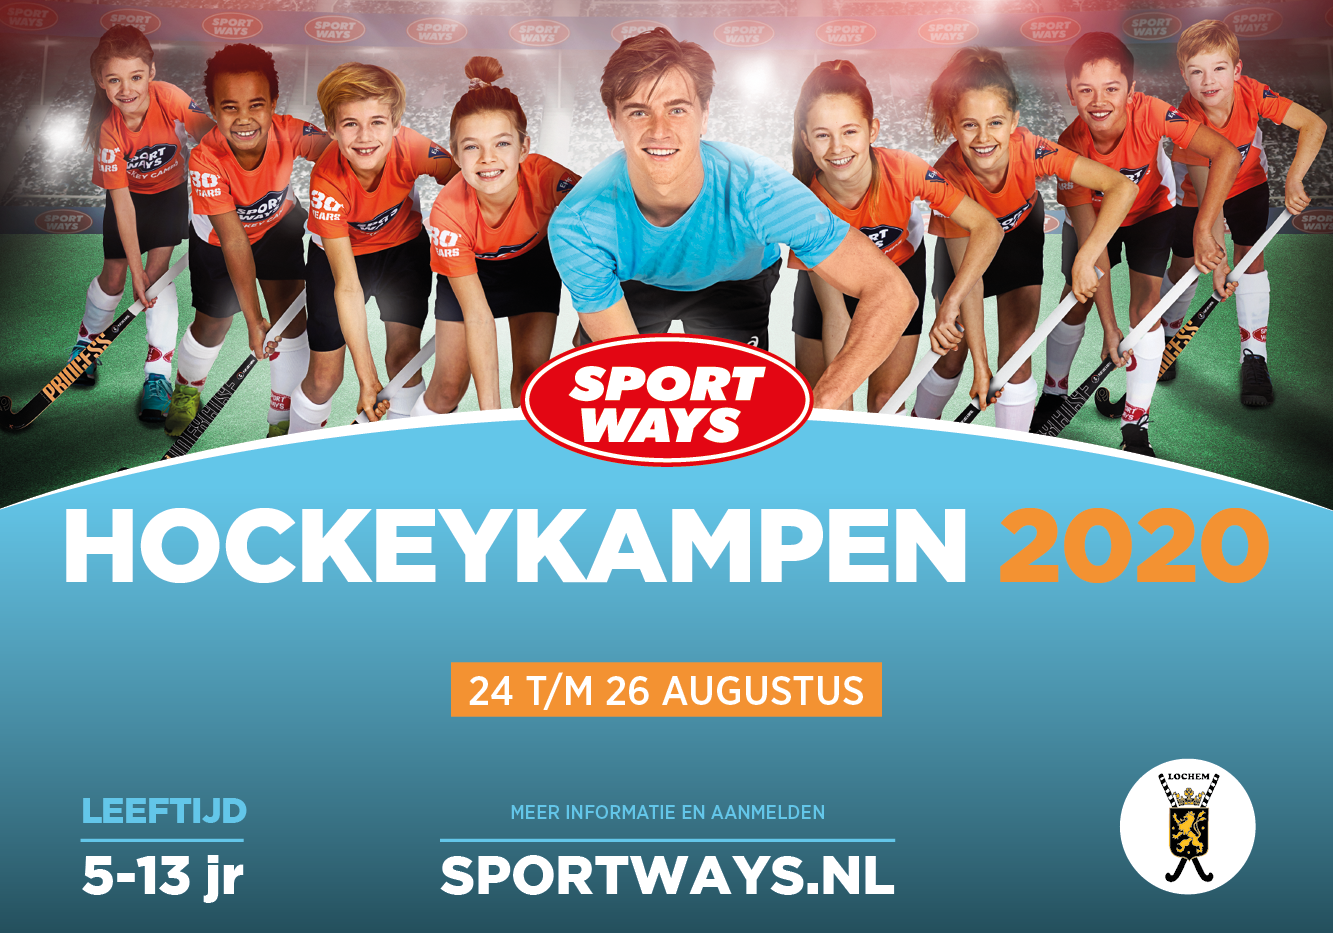 SportWays hockeykampen in 2020 op Lochem